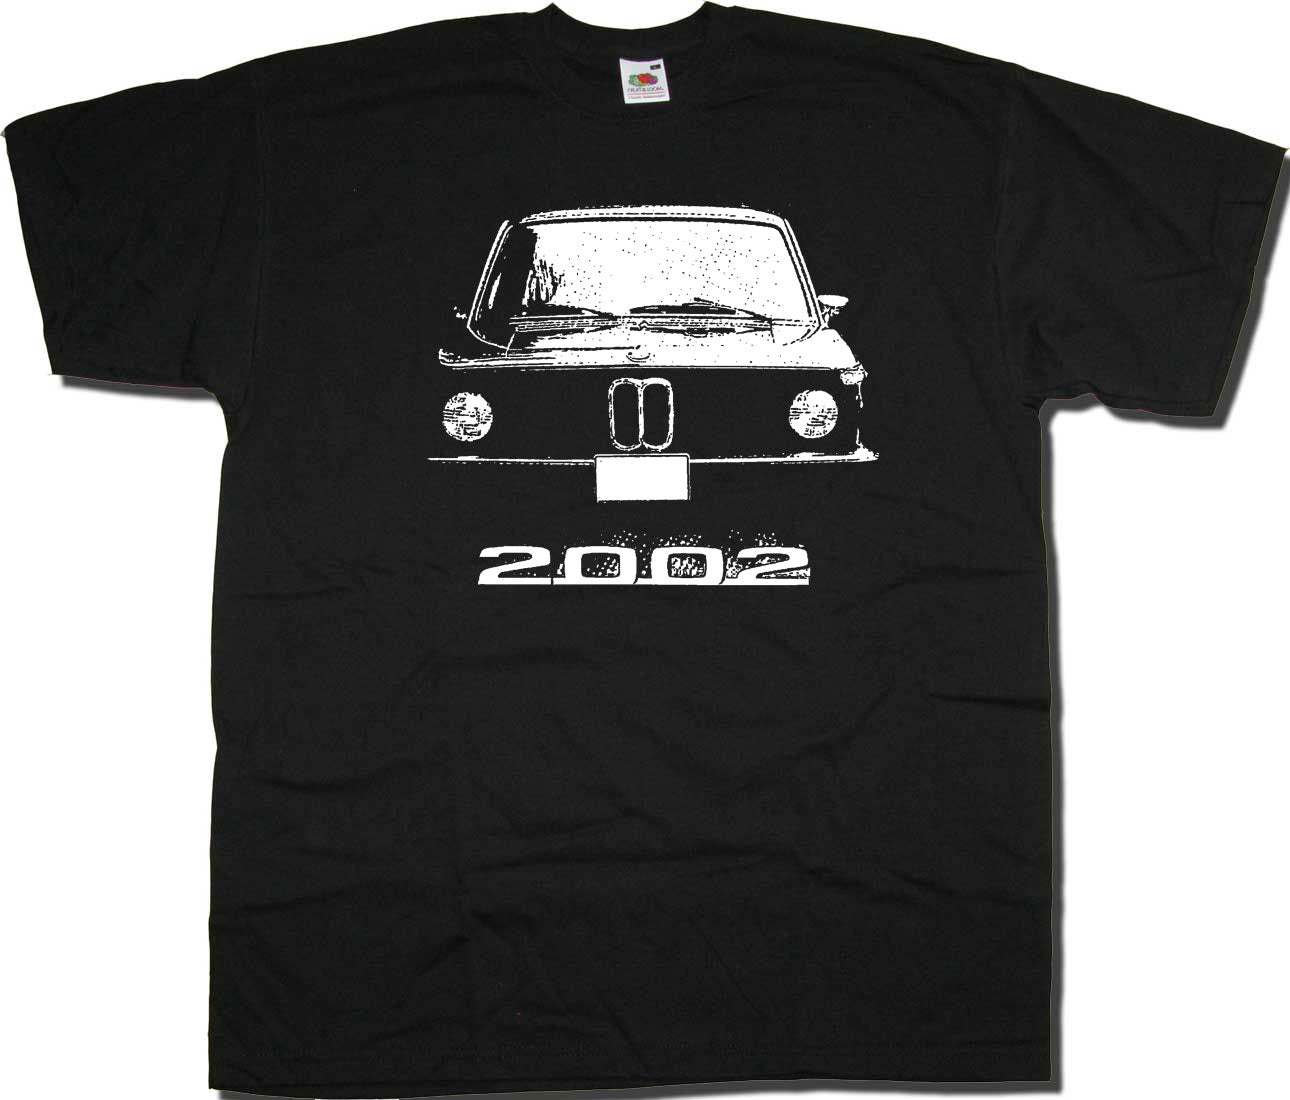 racer boxer moto cafe bmw products shirt shirts black vintage boss tee motorcycle